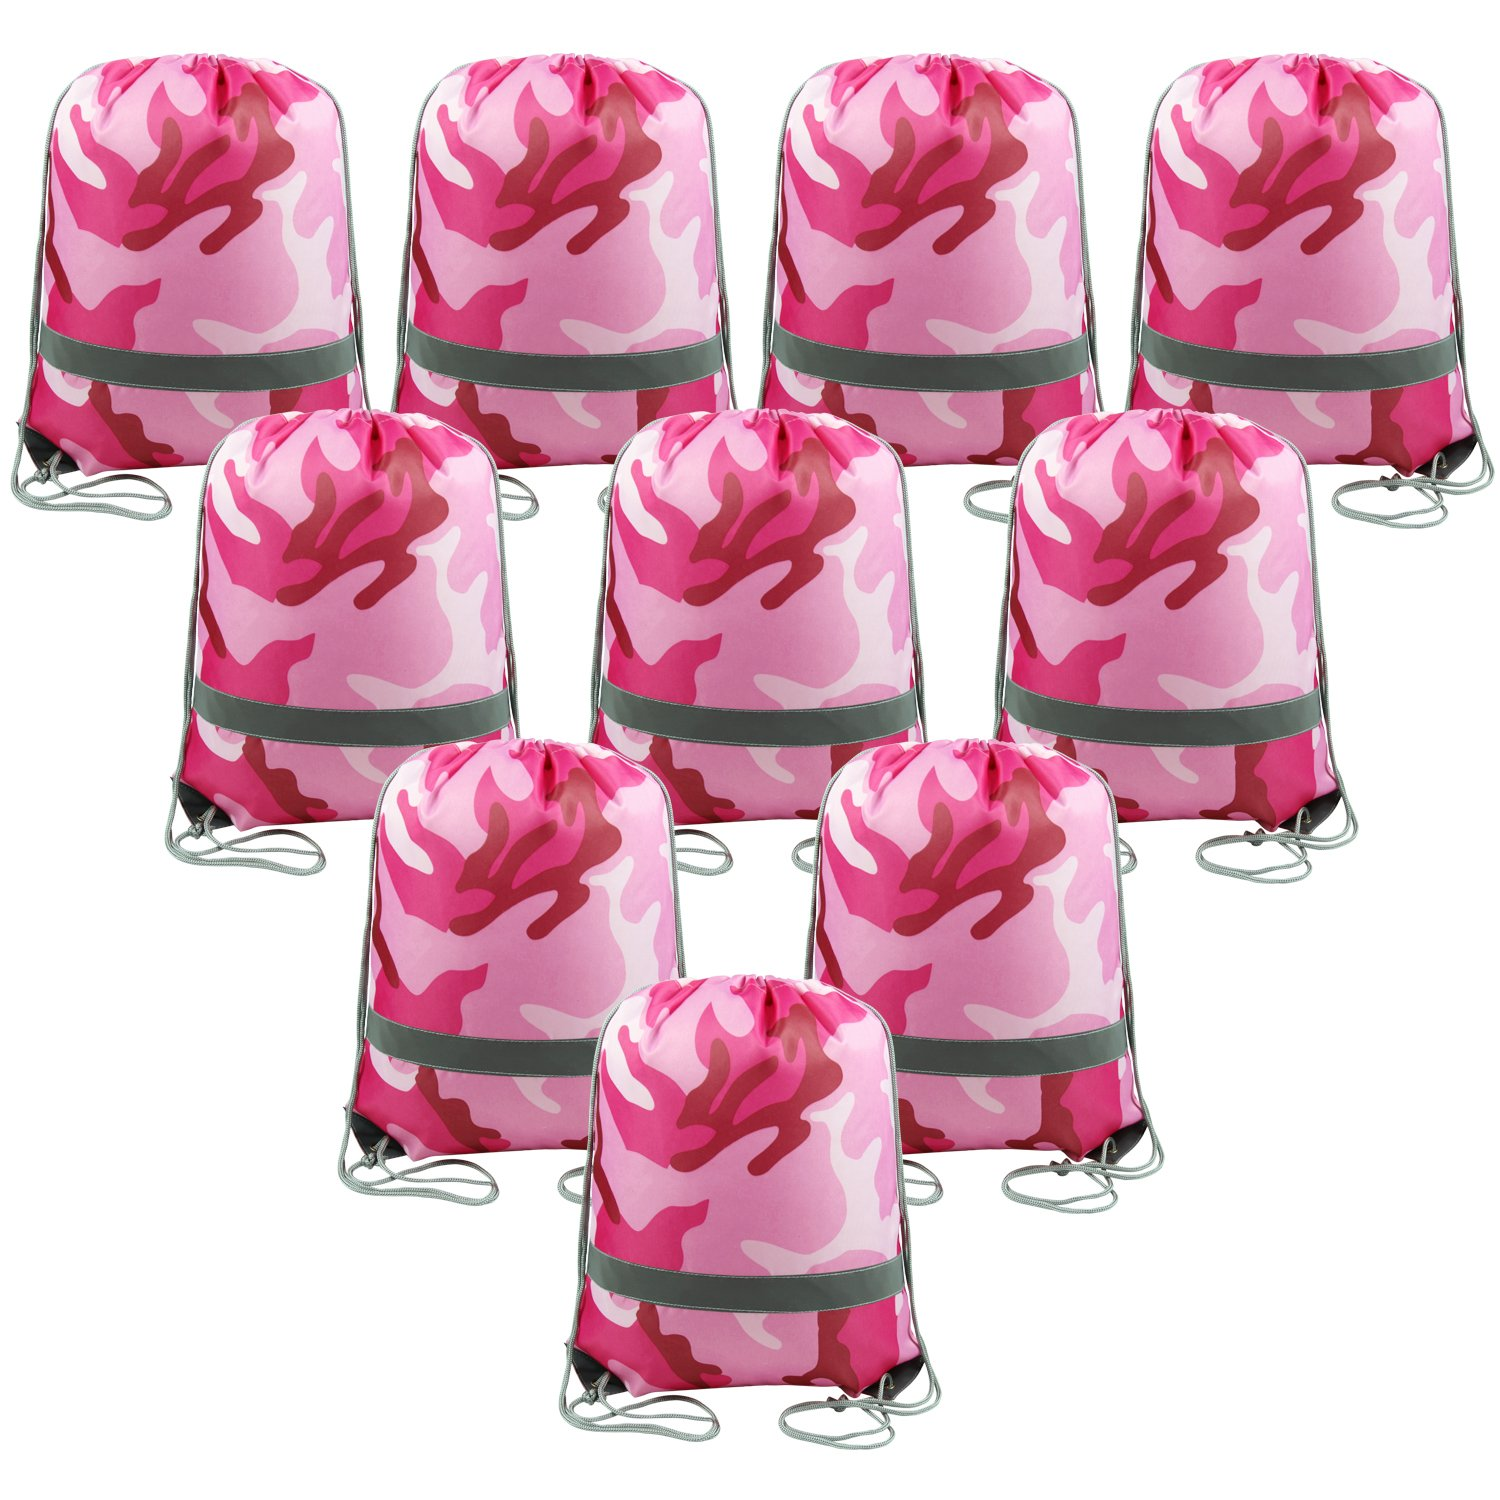 Drawstring Backpack Bags Reflective Bulk Pack, Promotional Sport Gym Sack Cinch Bags (Pink Camo)